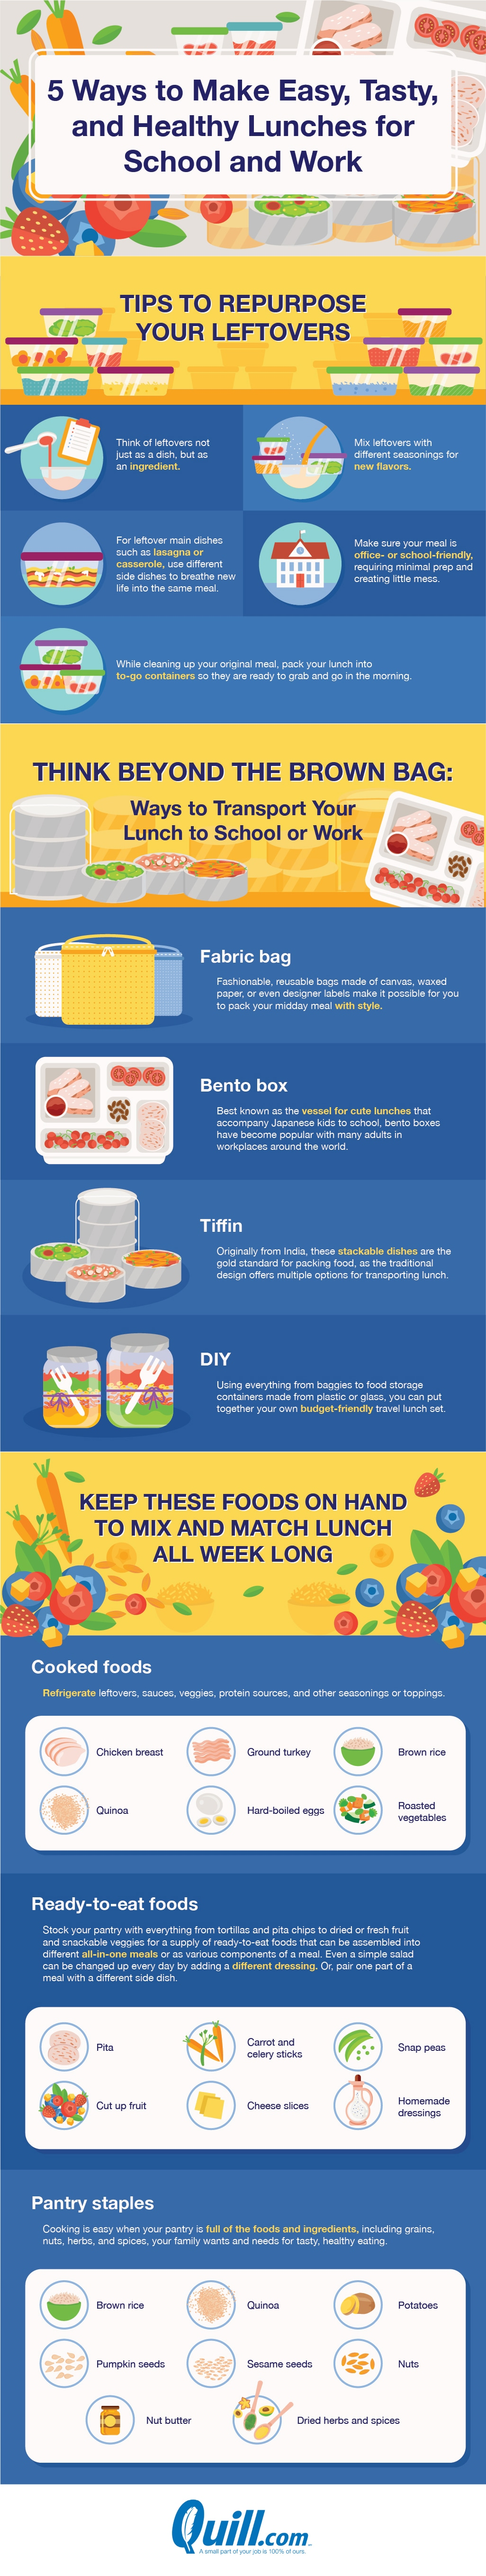 Homemade Packed Lunches: The Tastier, Healthier, Easier Option - Infographic